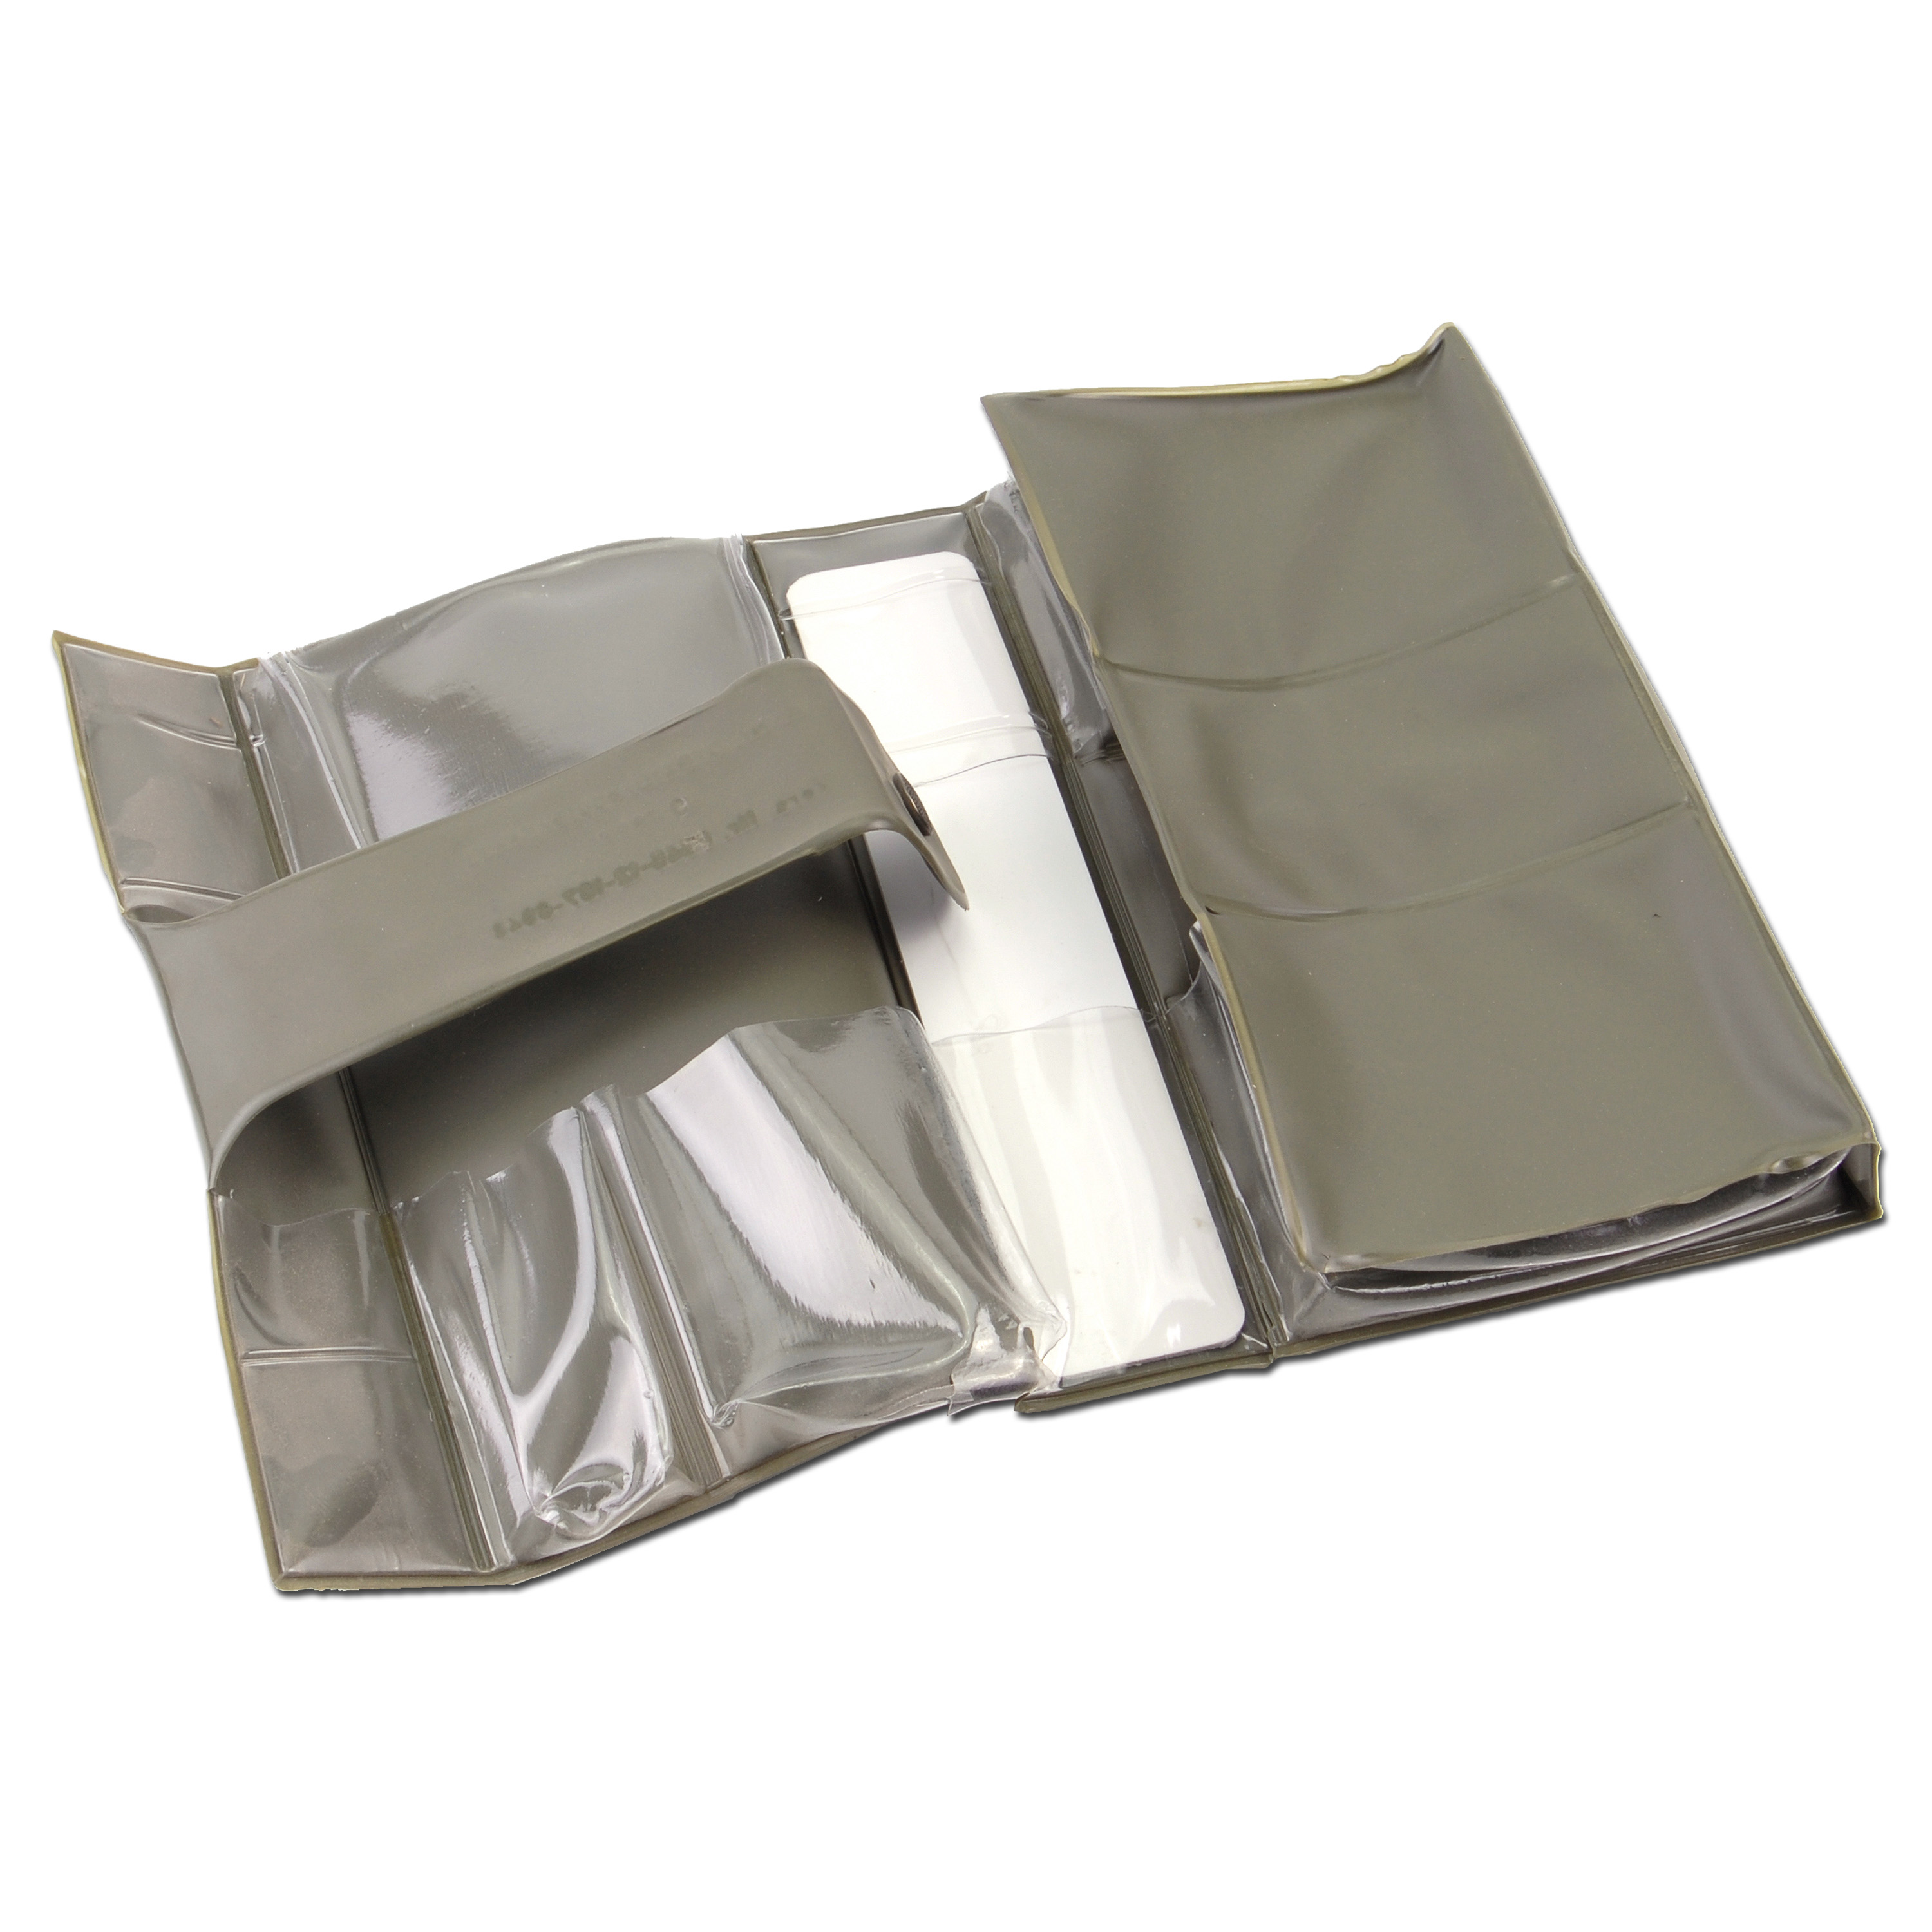 Medic pouch small